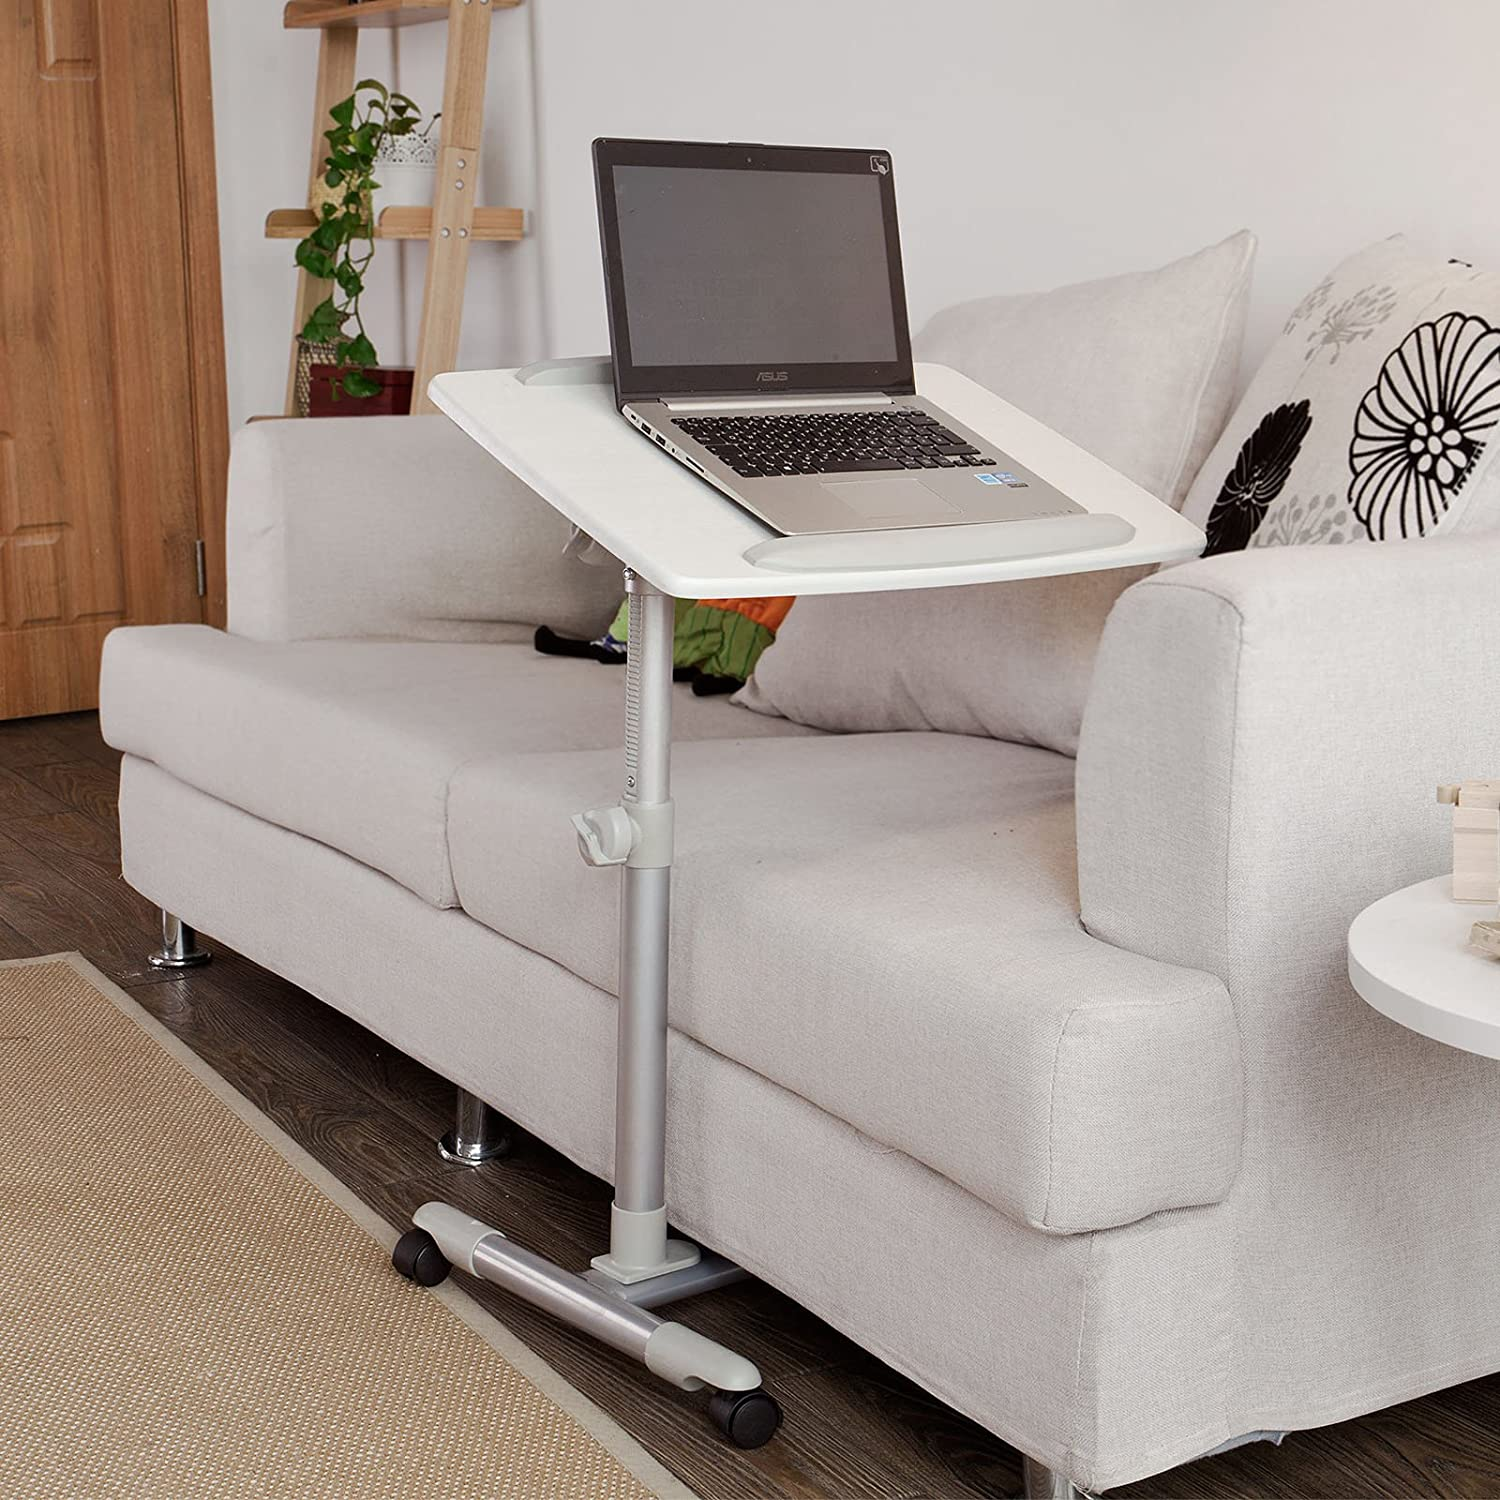 for couch bed stand pc laptop desk adjustable standing tray table work pin cart portable